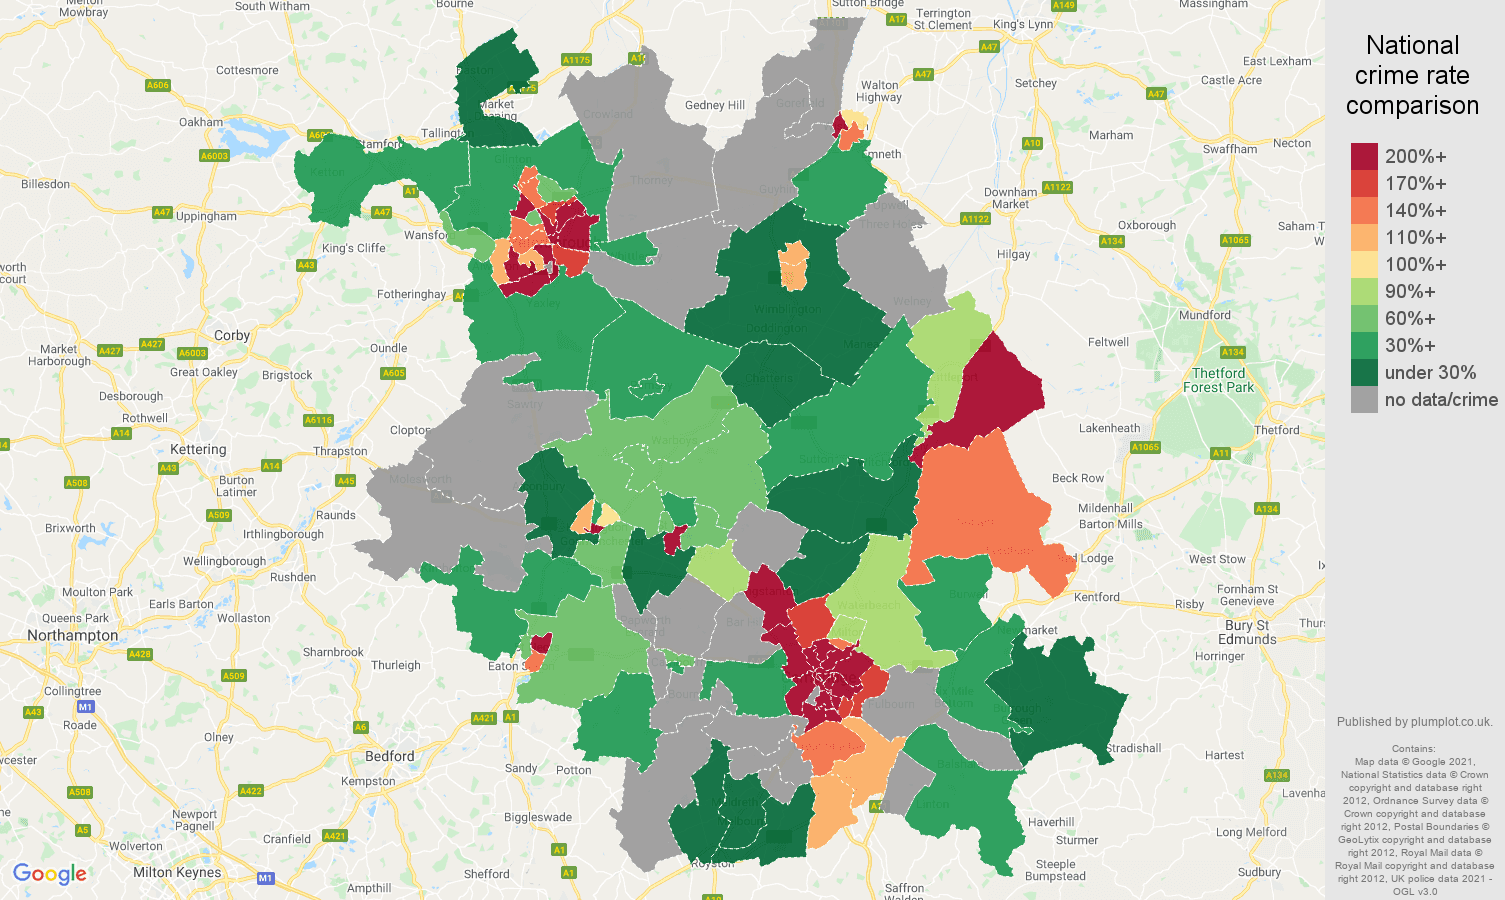 Cambridgeshire bicycle theft crime rate comparison map